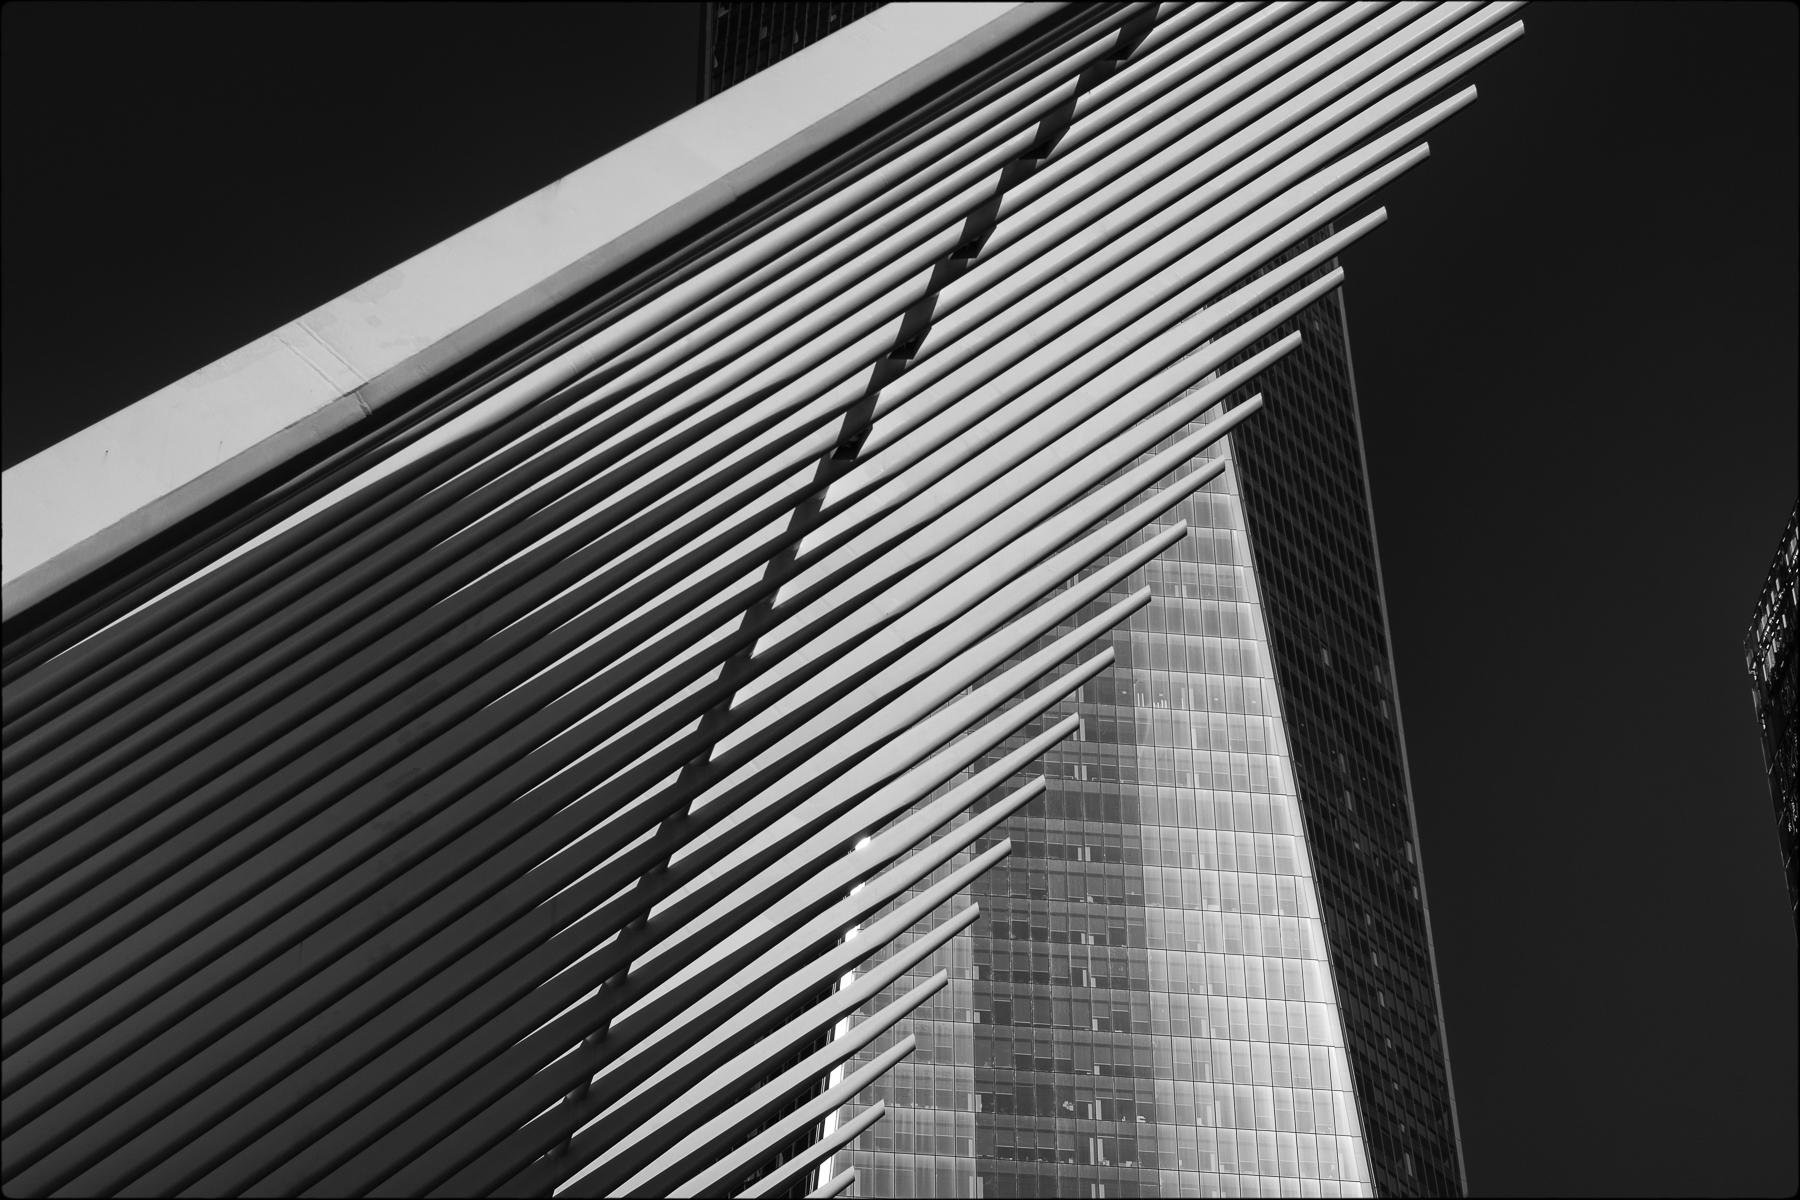 Oculus and World Trade Center, New York : street & stories : TIMOTHY FLOYD PHOTOGRAPHER, NATURE PHOTOGRAPHY, PHOTO ESSAYS, PHOTOJOURNALISM